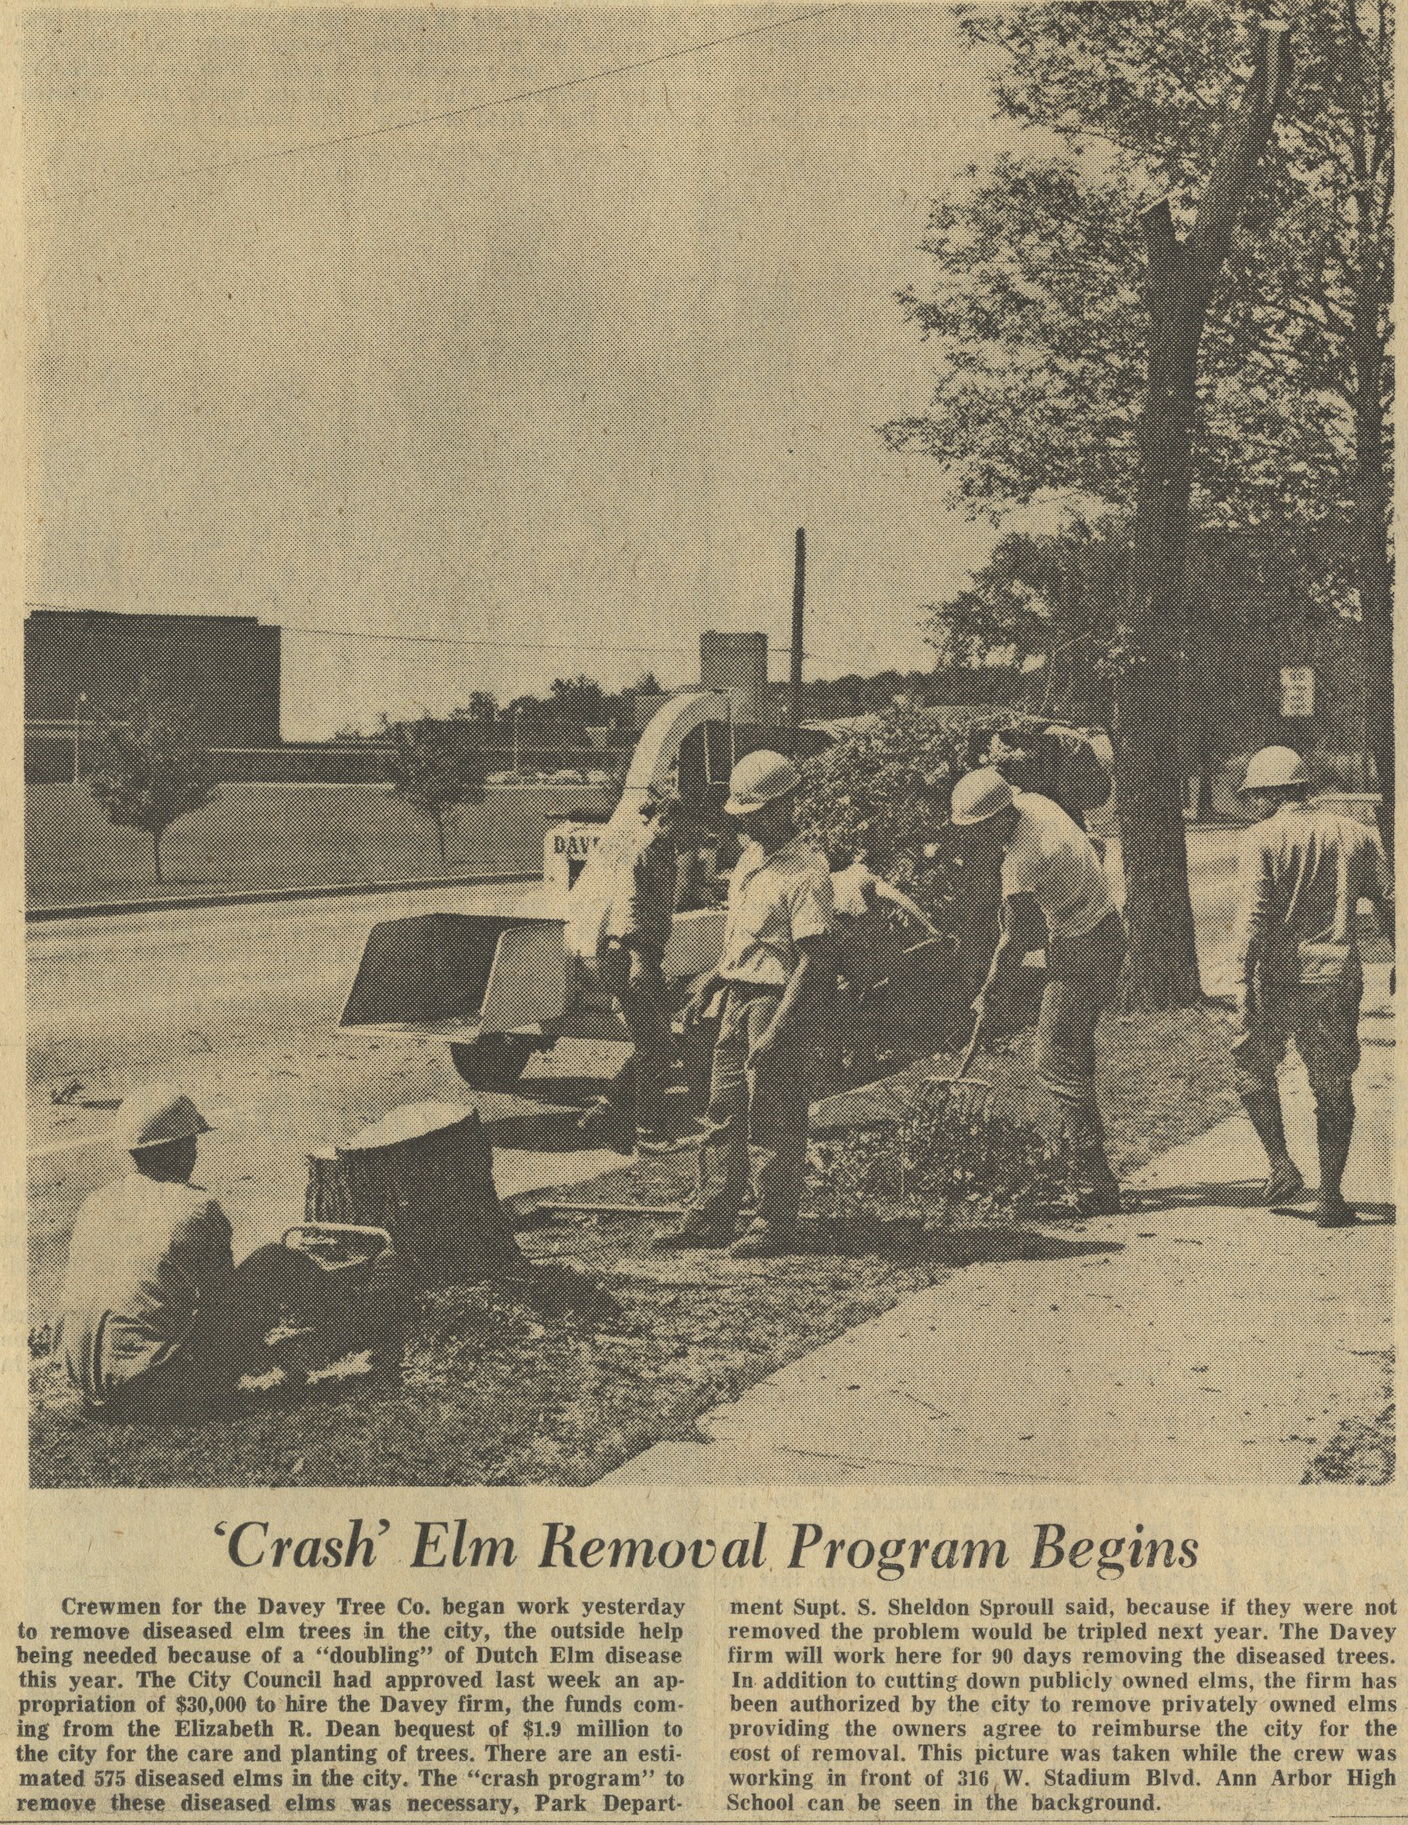 'Crash' Elm Removal Program Begins image